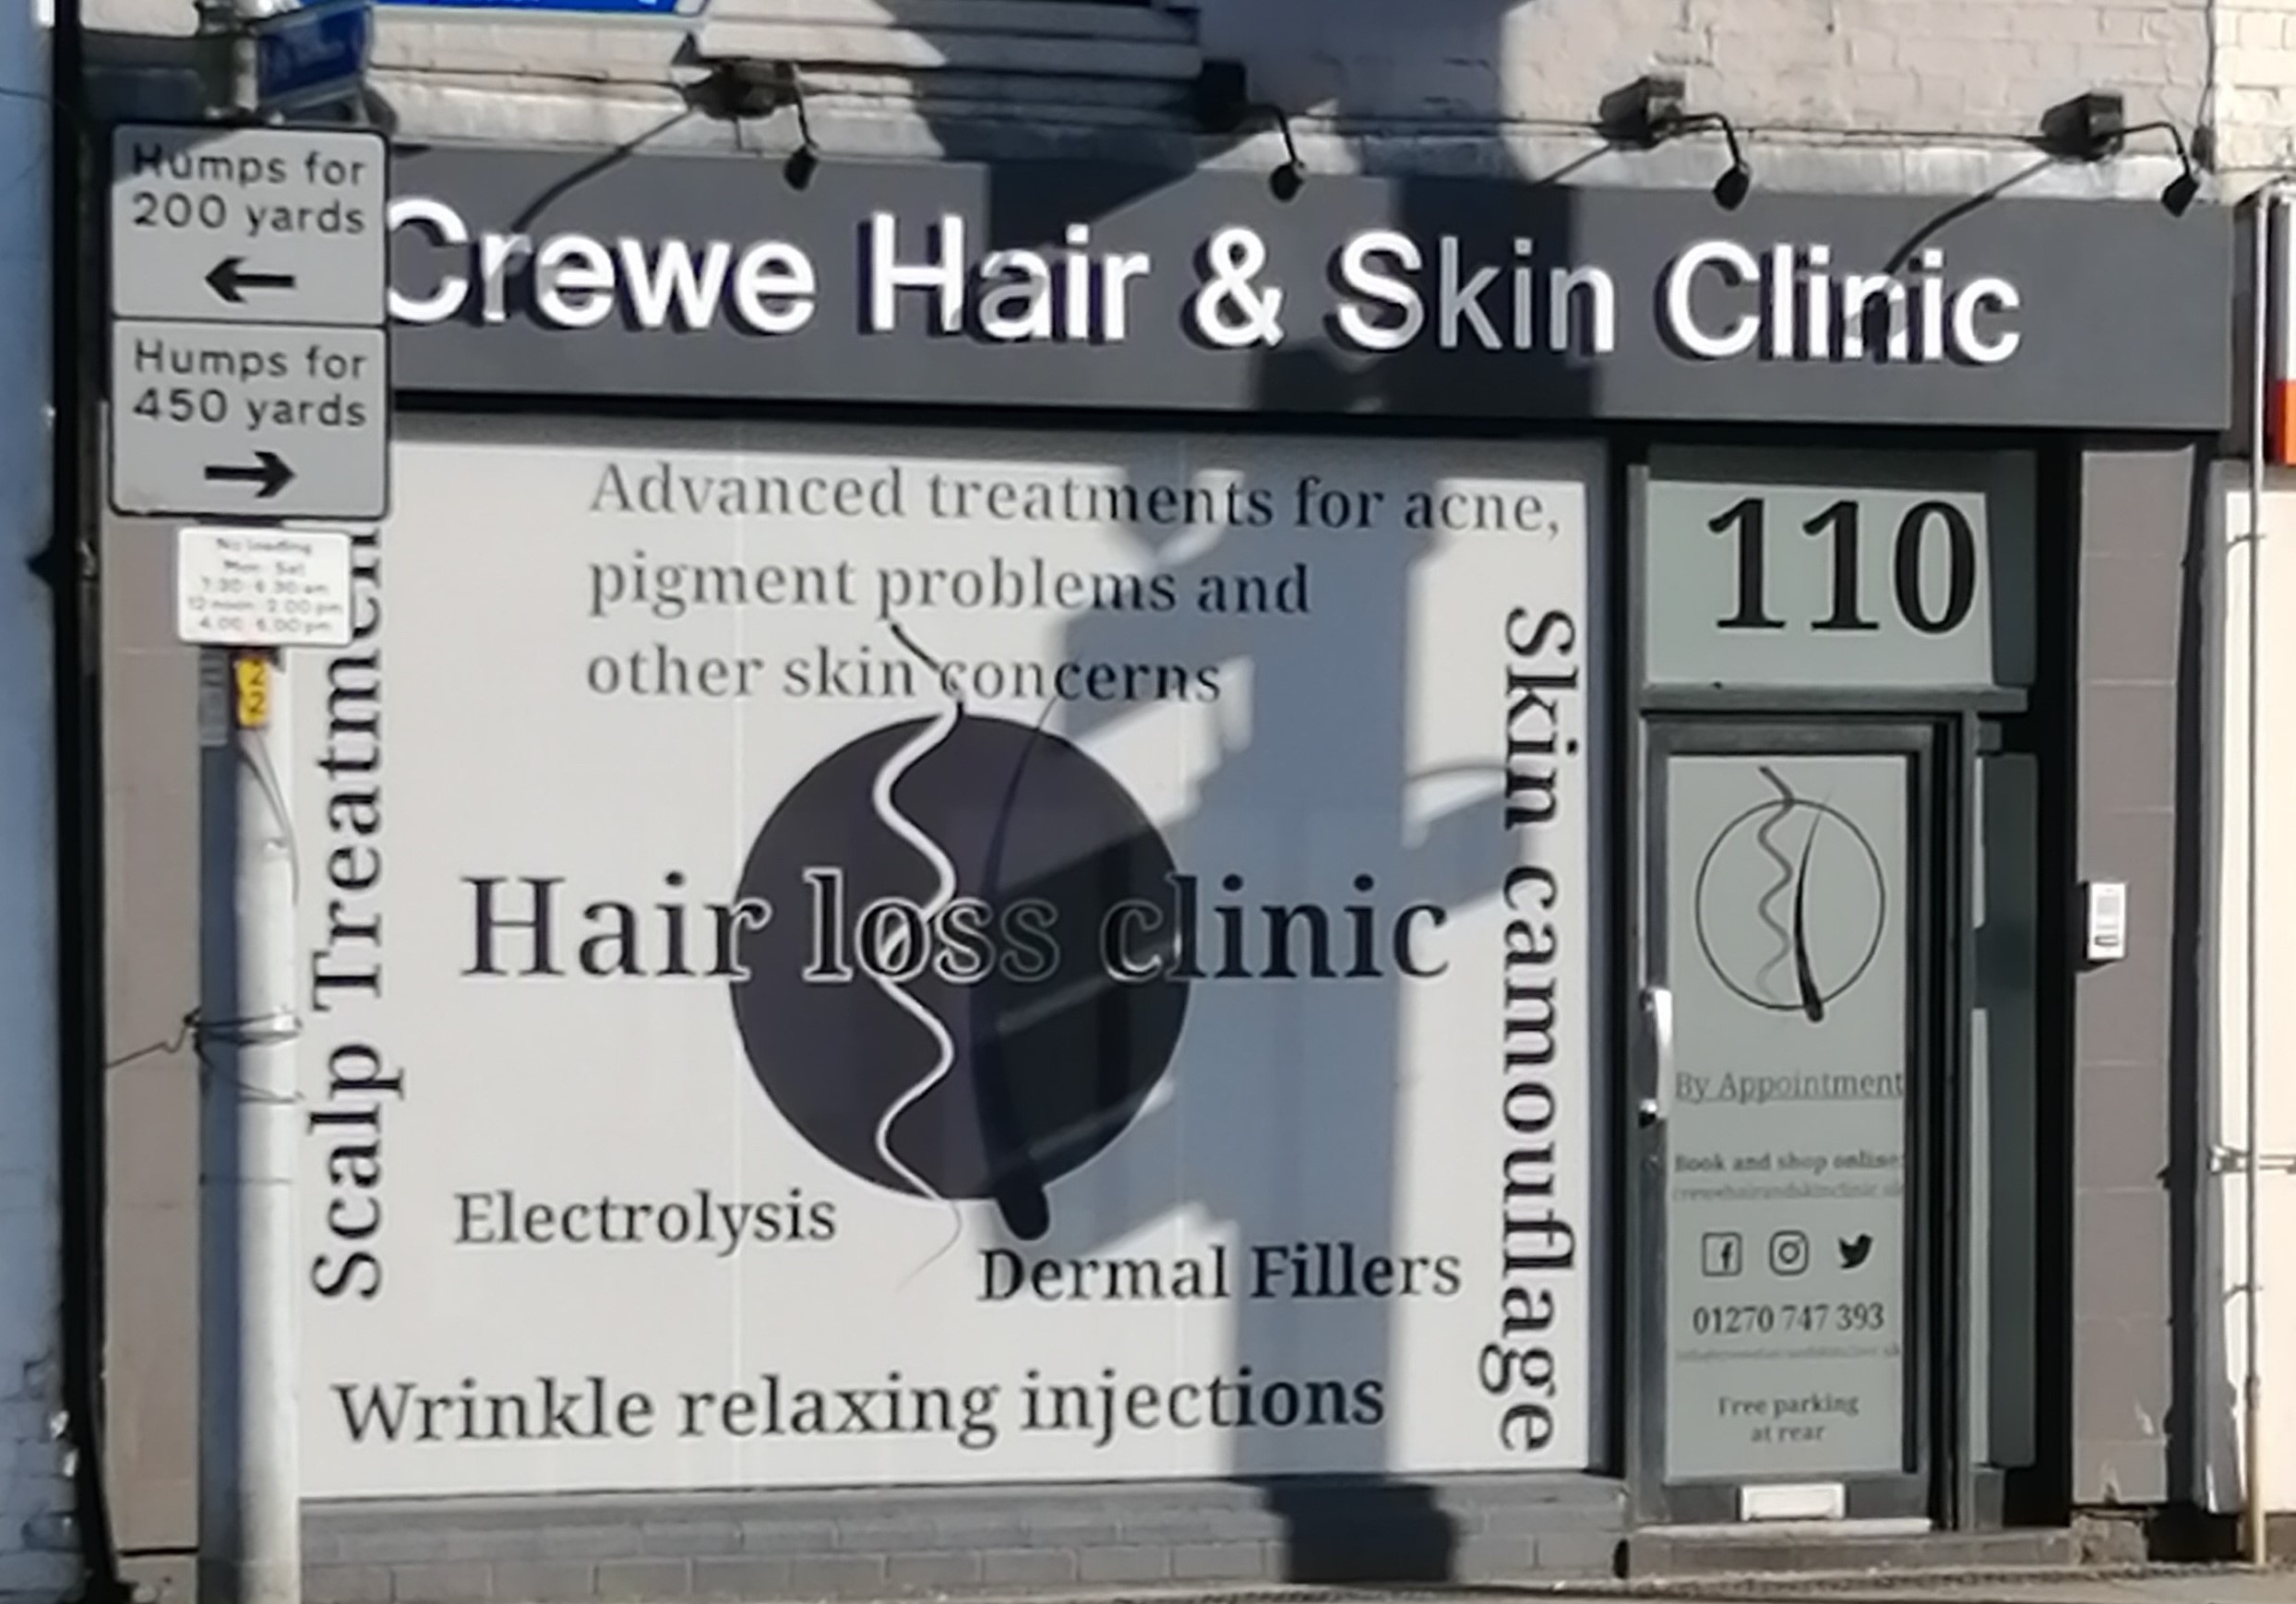 Crewe Hair and Skin Clinic